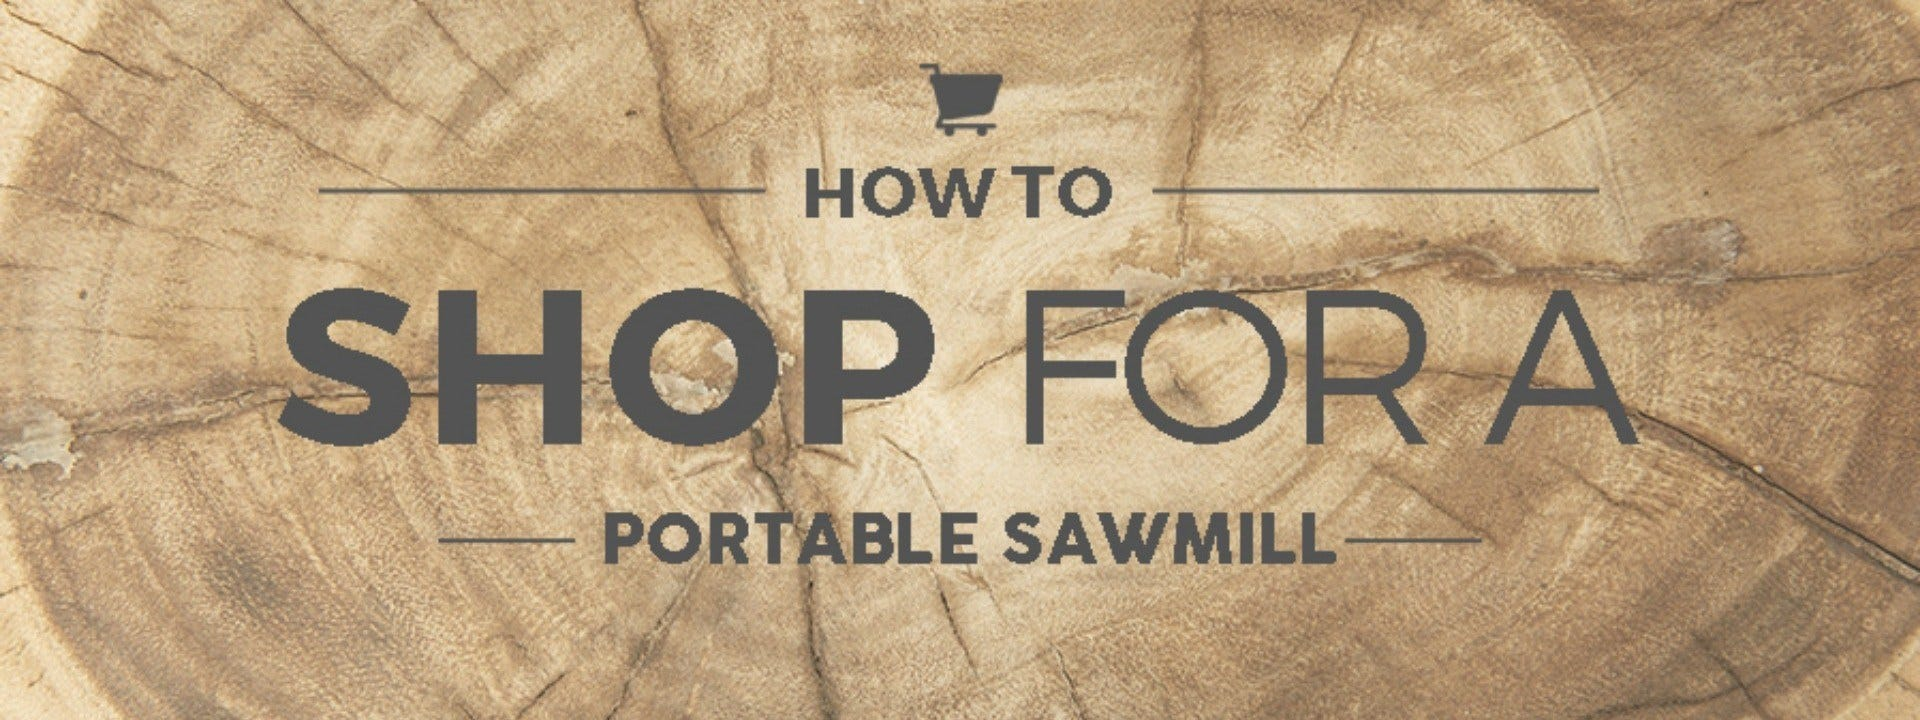 How to Shop for a Portable Sawmill